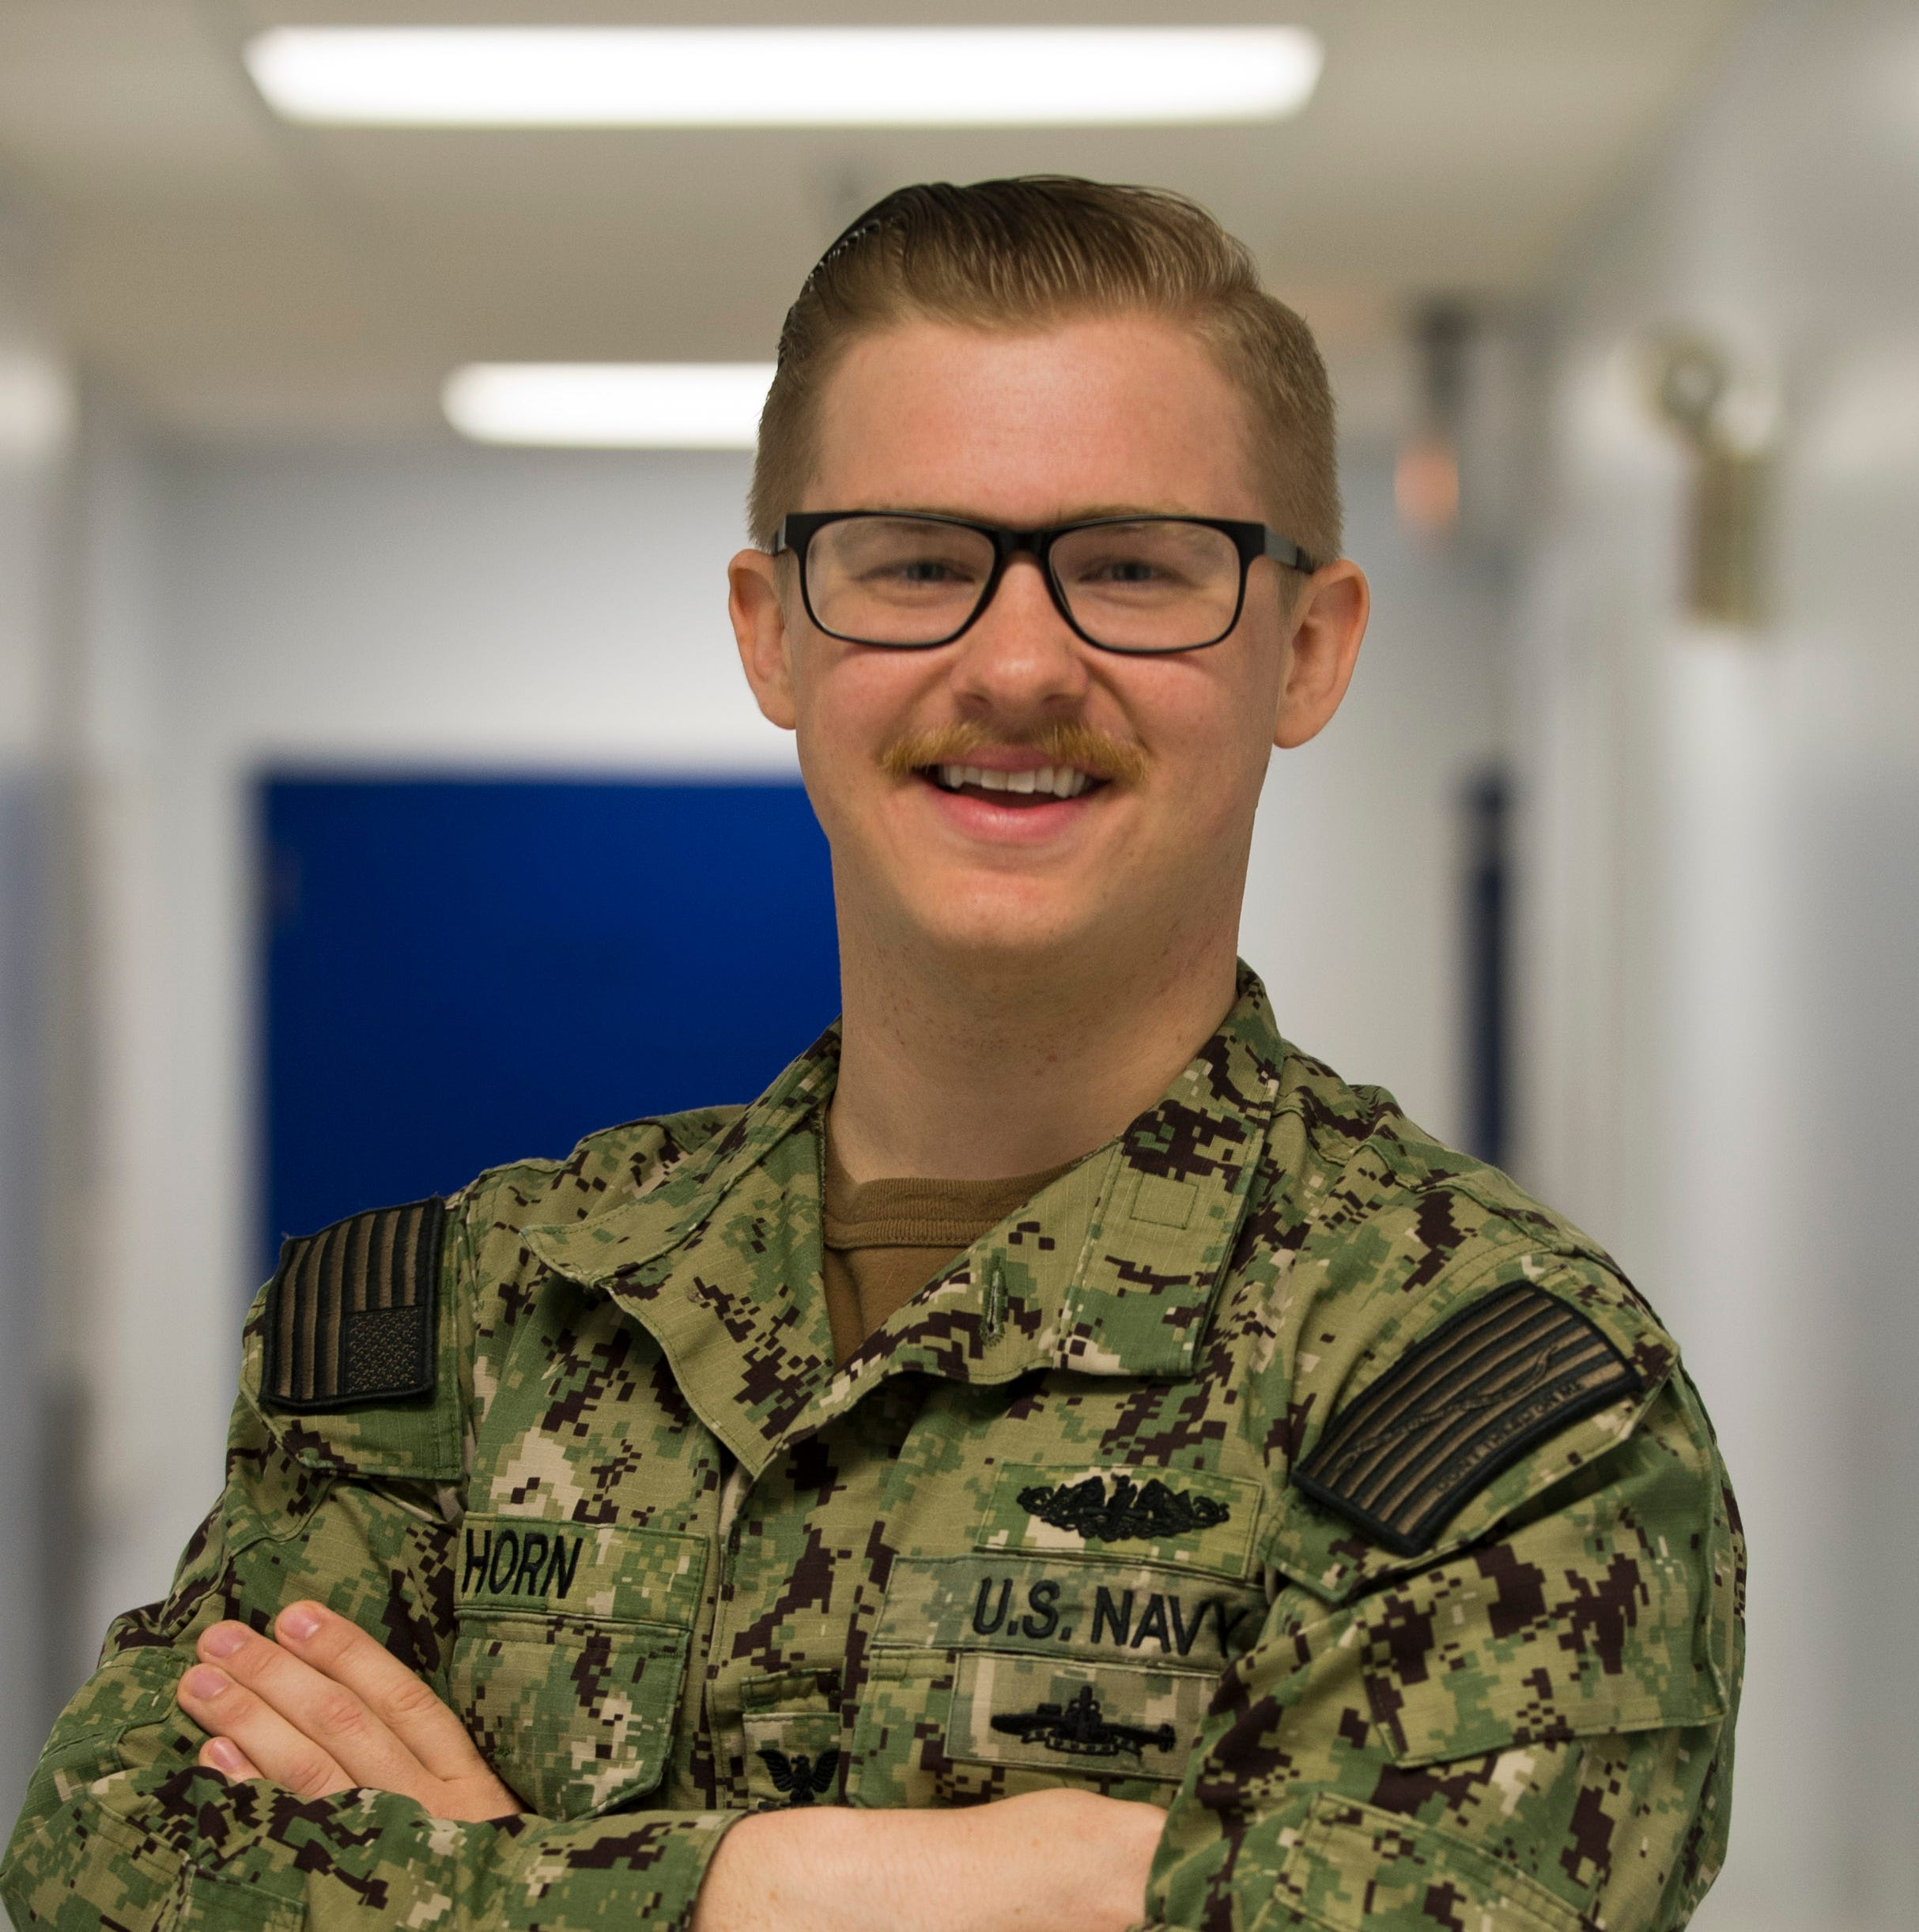 Friends and Neighbors: Muncie native serves aboard Navy submarine